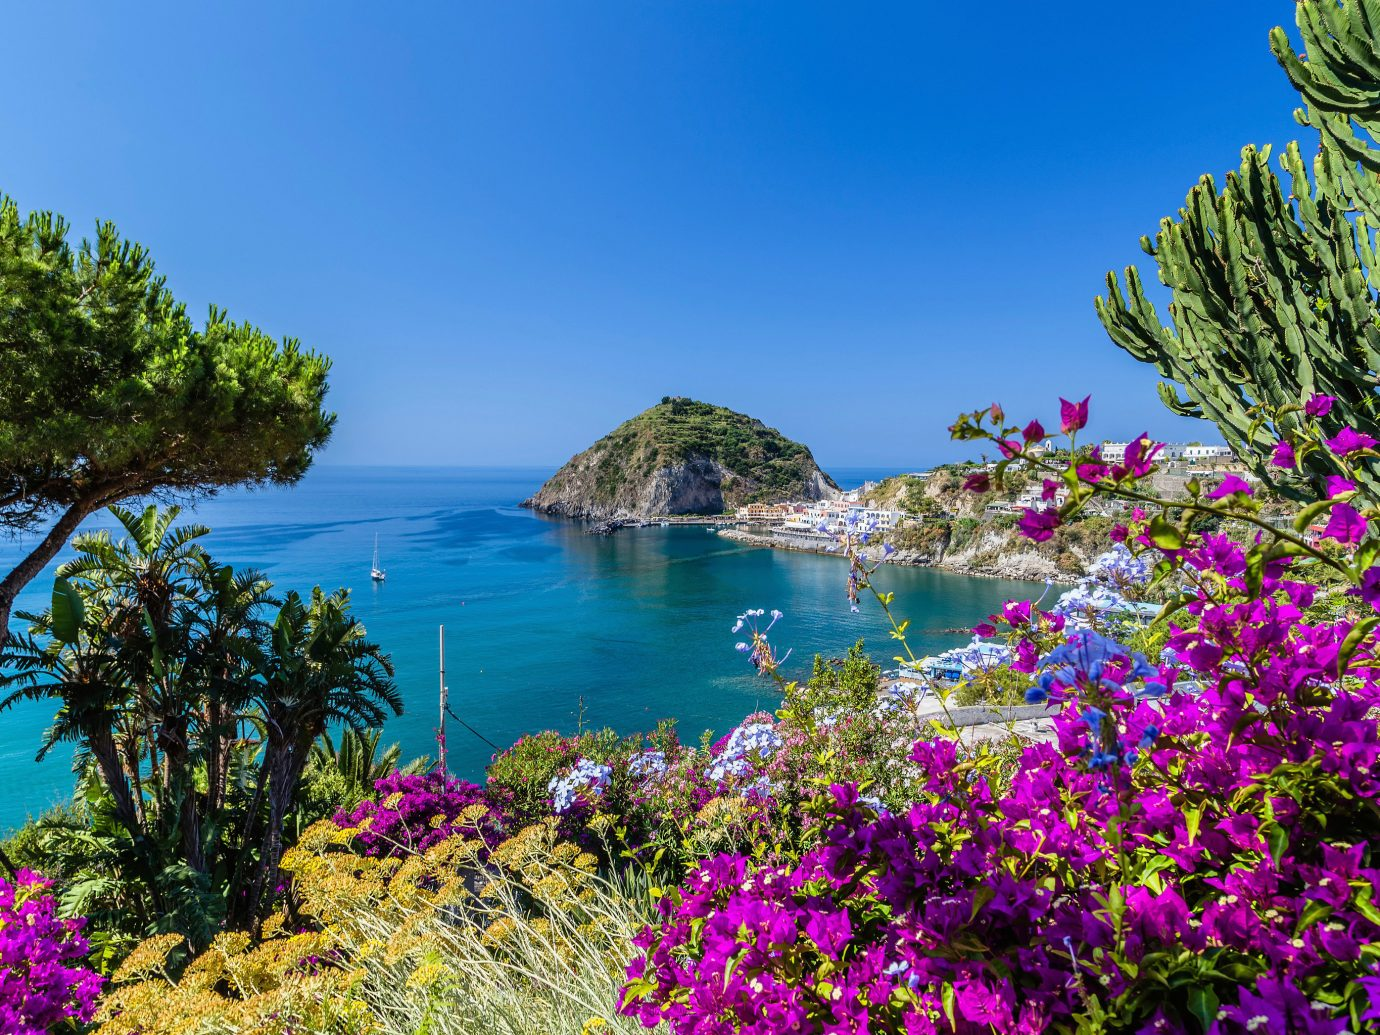 Travel Tips tree outdoor water flower vegetation landform plant flora body of water ecosystem Sea Coast bay Nature mountain landscape tropics Beach Lake wildflower surrounded pretty Garden colorful beautiful bushes